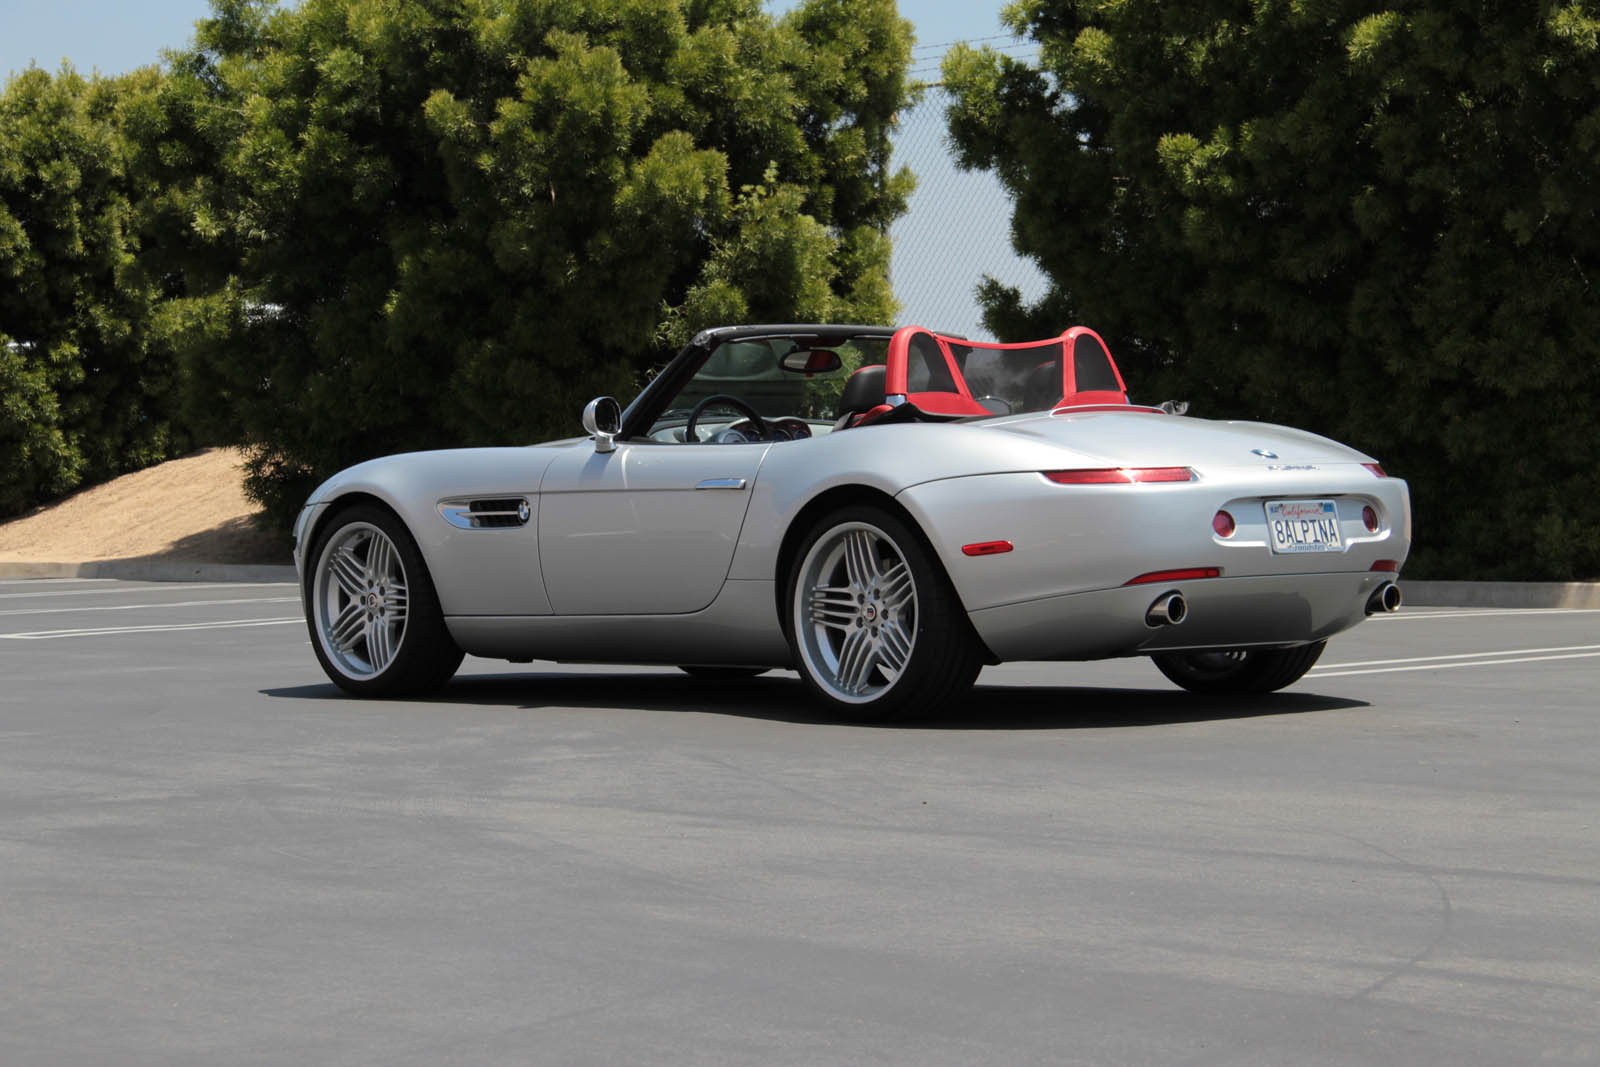 2003 Bmw Alpina Z8 Roadster Could Be The Ultimate Cruising